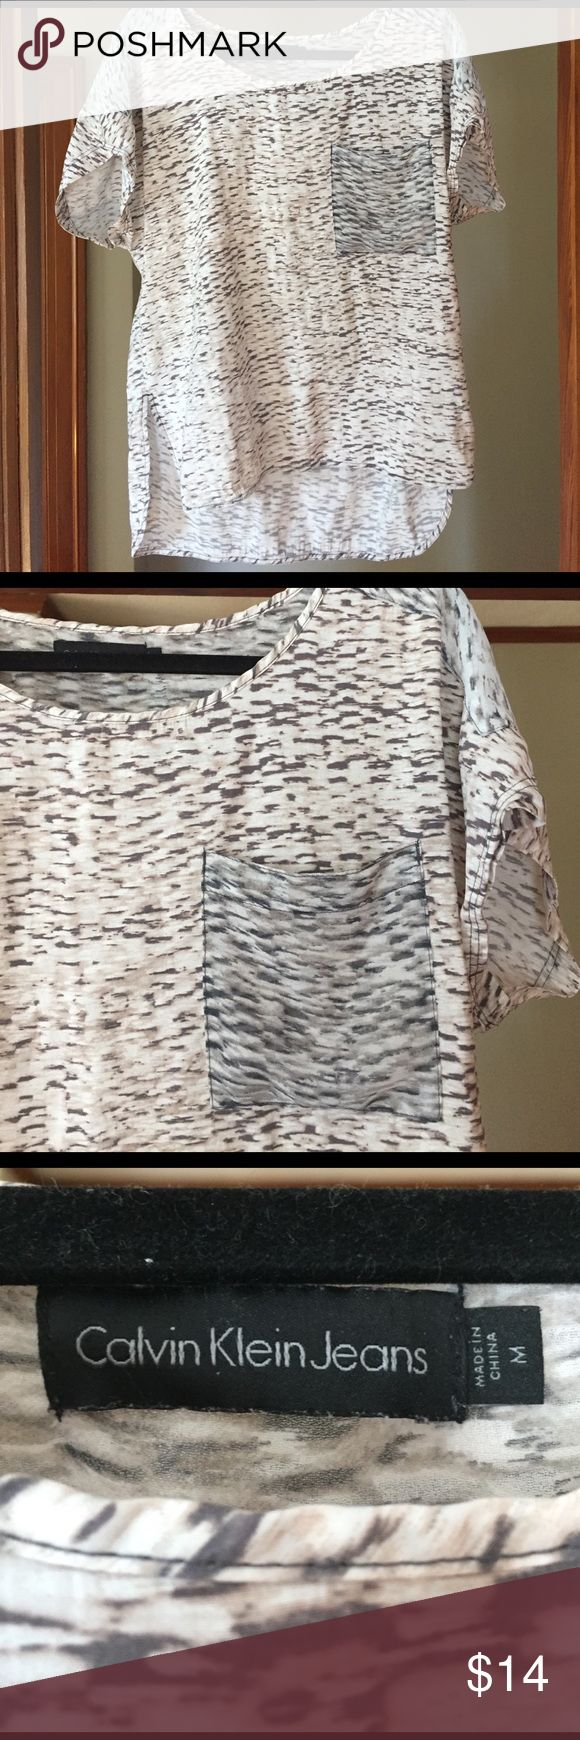 Calvin Klein Jeans Top. Loose fitting top, looks great with skinny jeans or leggings. Make an offer! Calvin Klein Jeans Tops Blouses